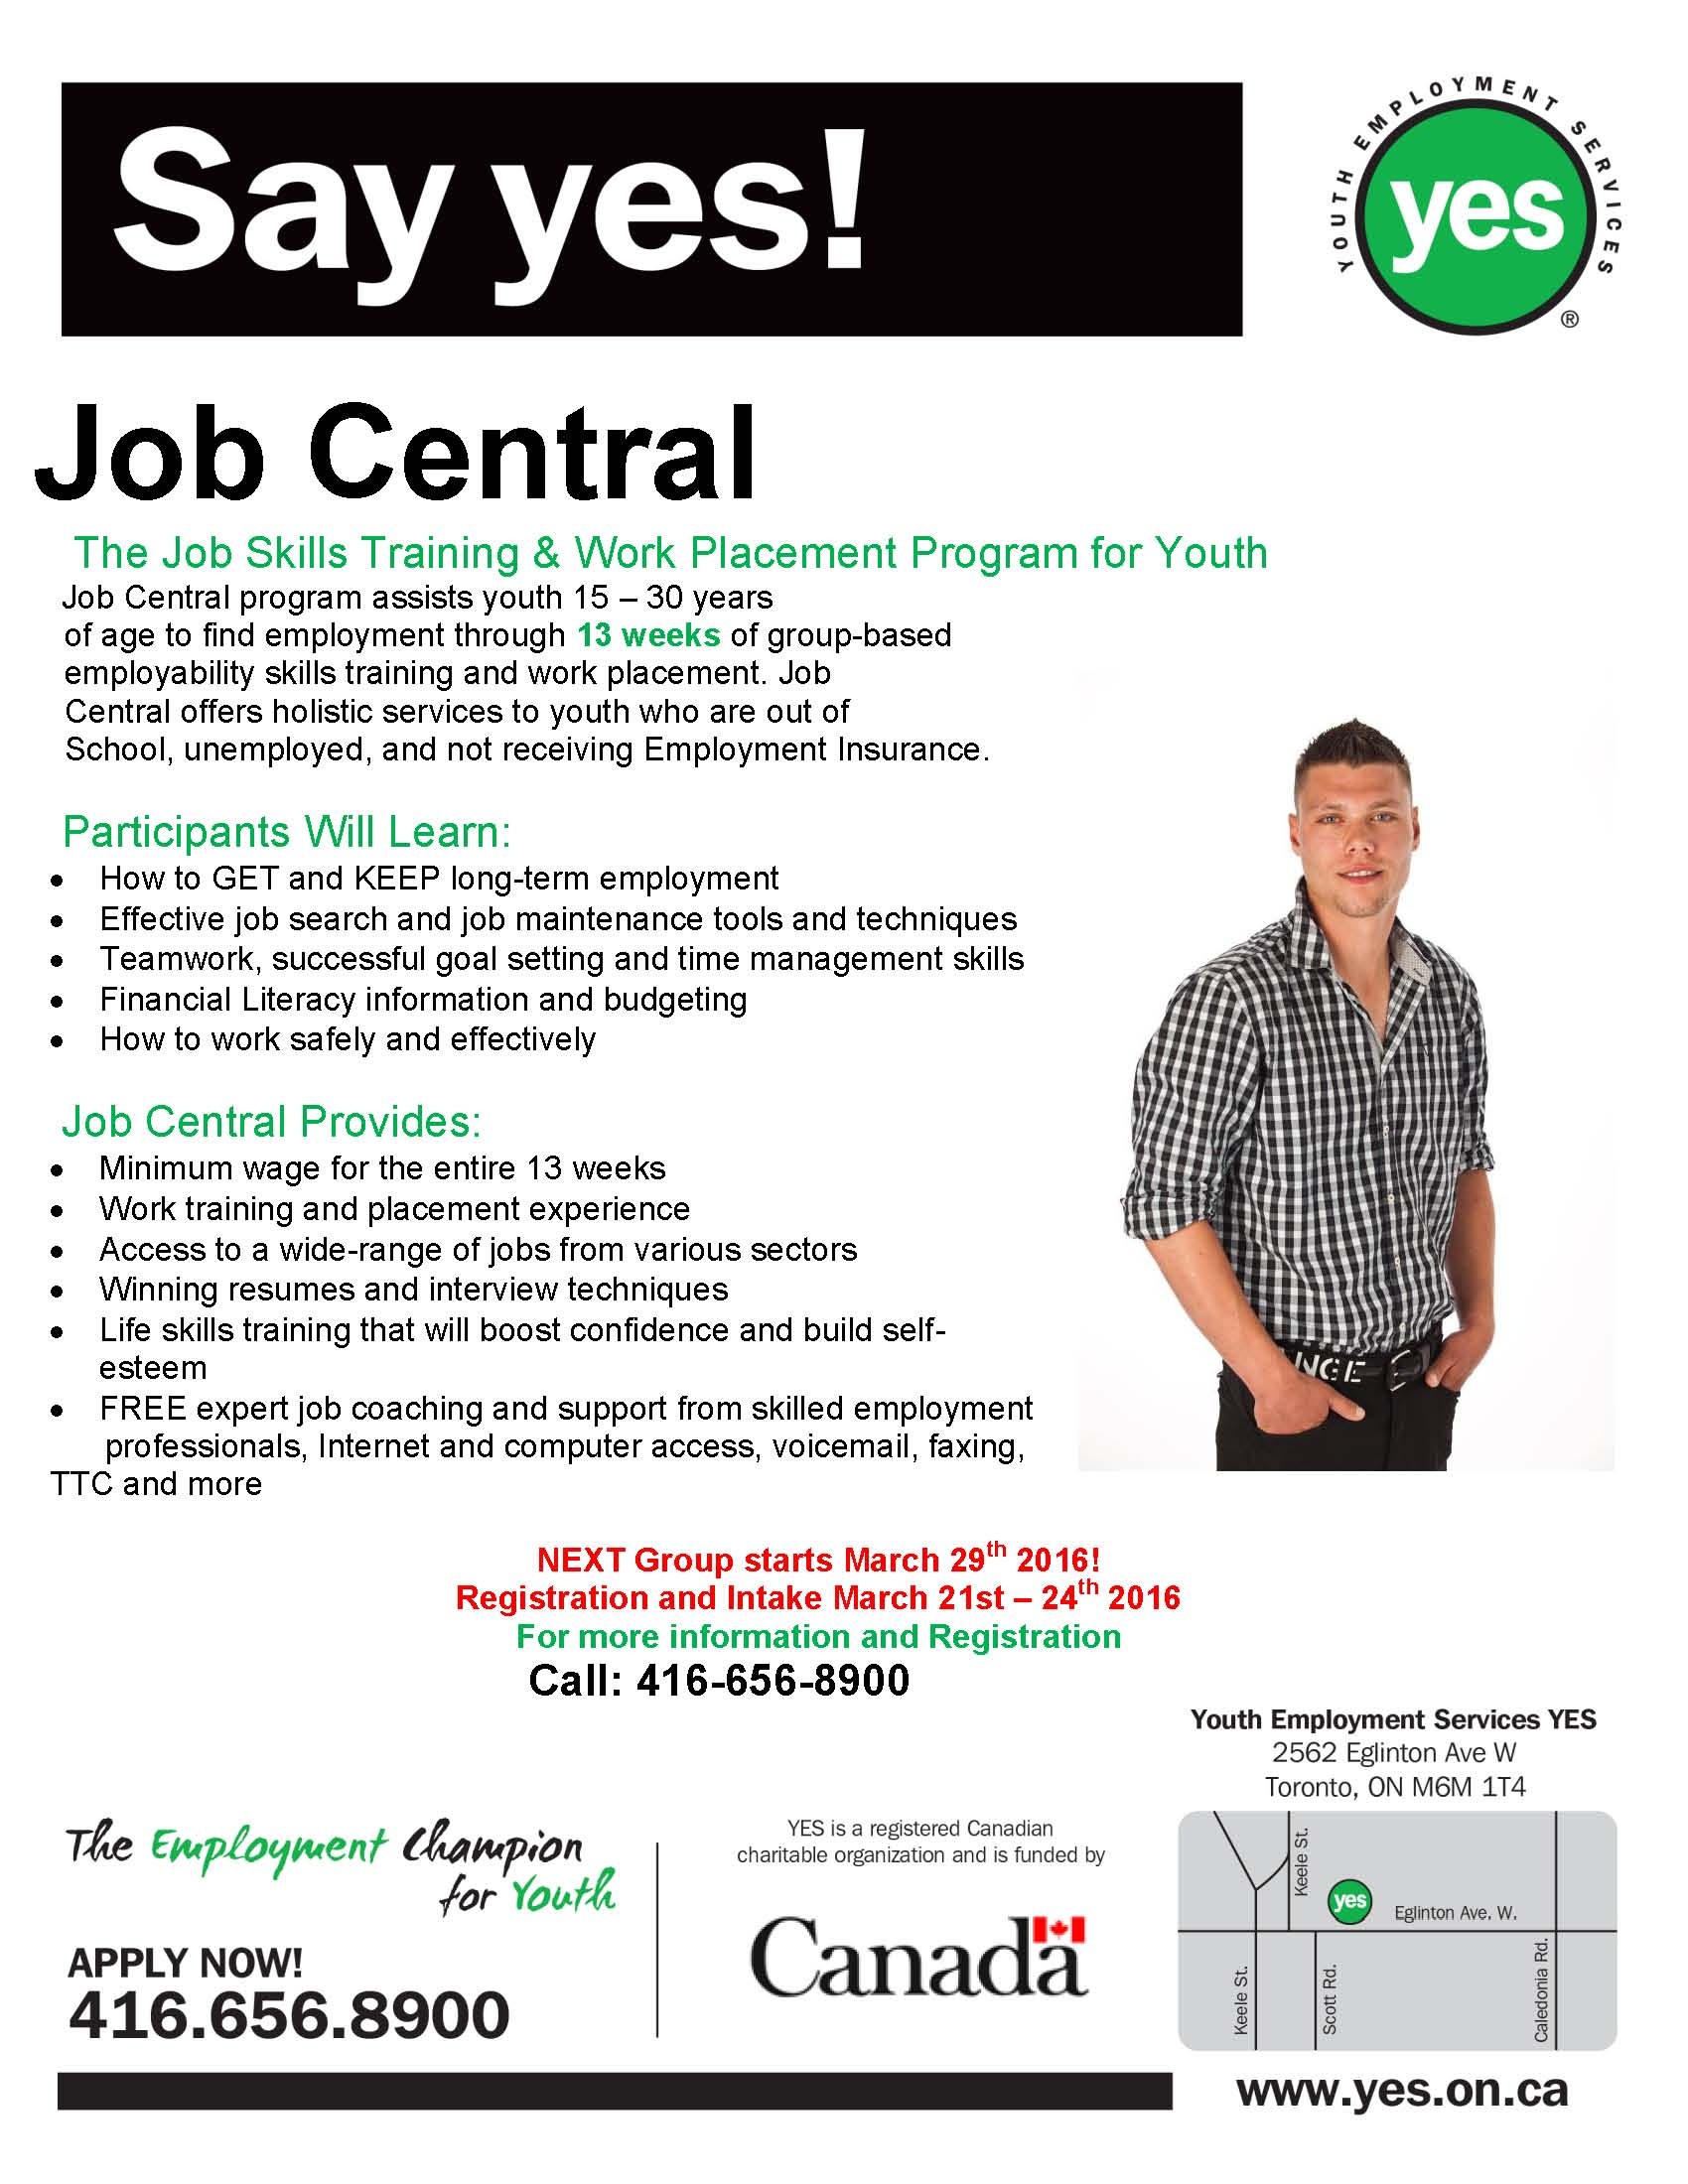 news events youth employment services yes page  our next job central group starts 29th call 416 656 8900 to register